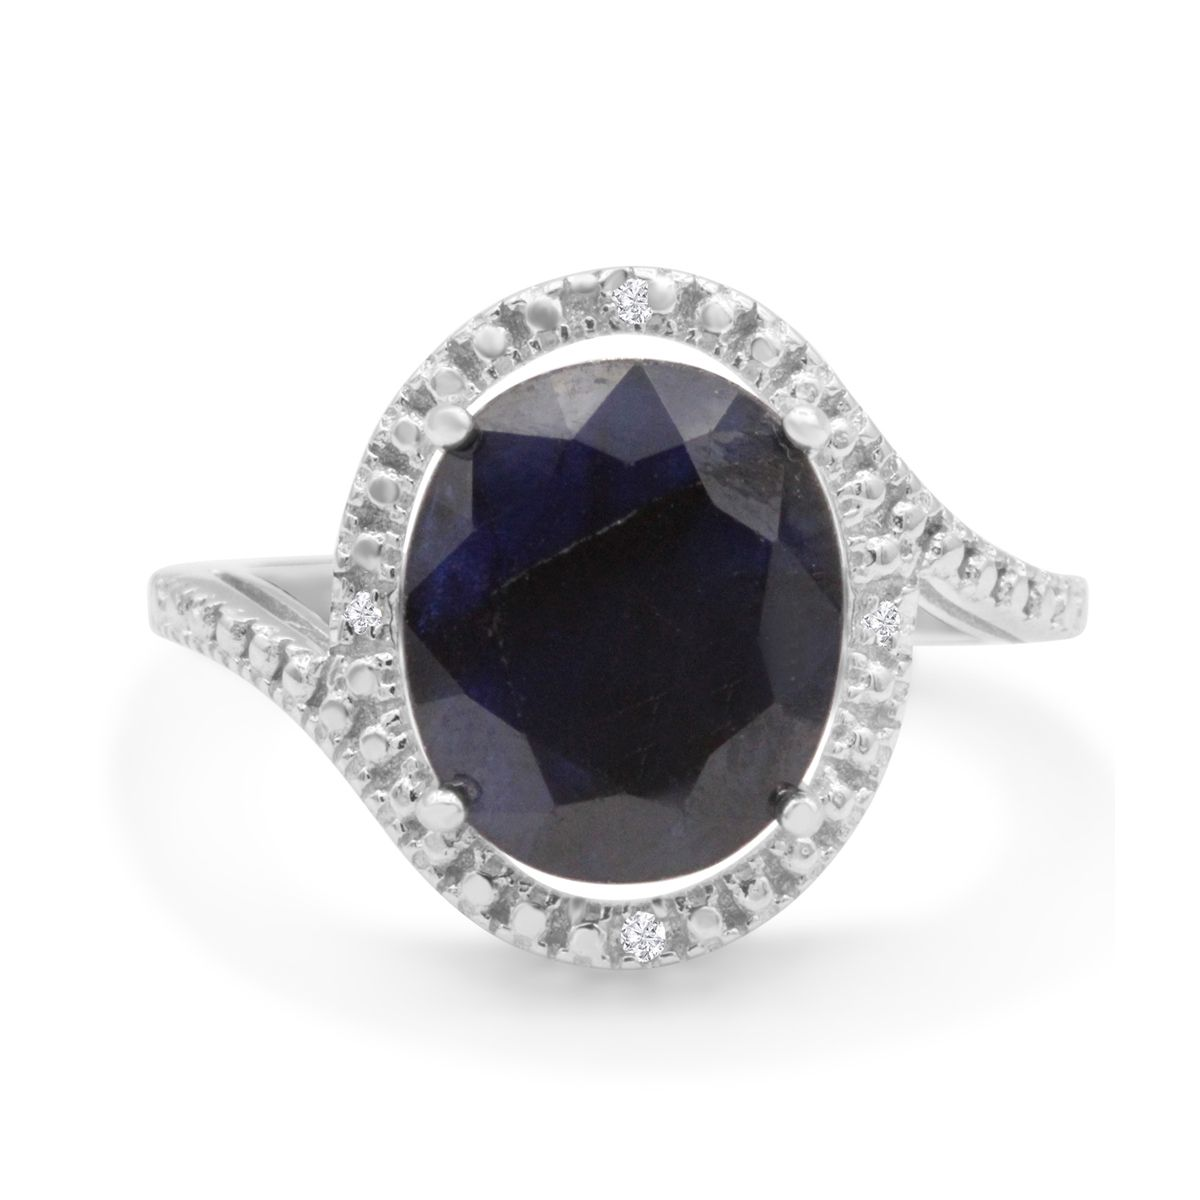 5 1/2 Carat Oval Sapphire and Halo Diamond Ring In Sterling Silver